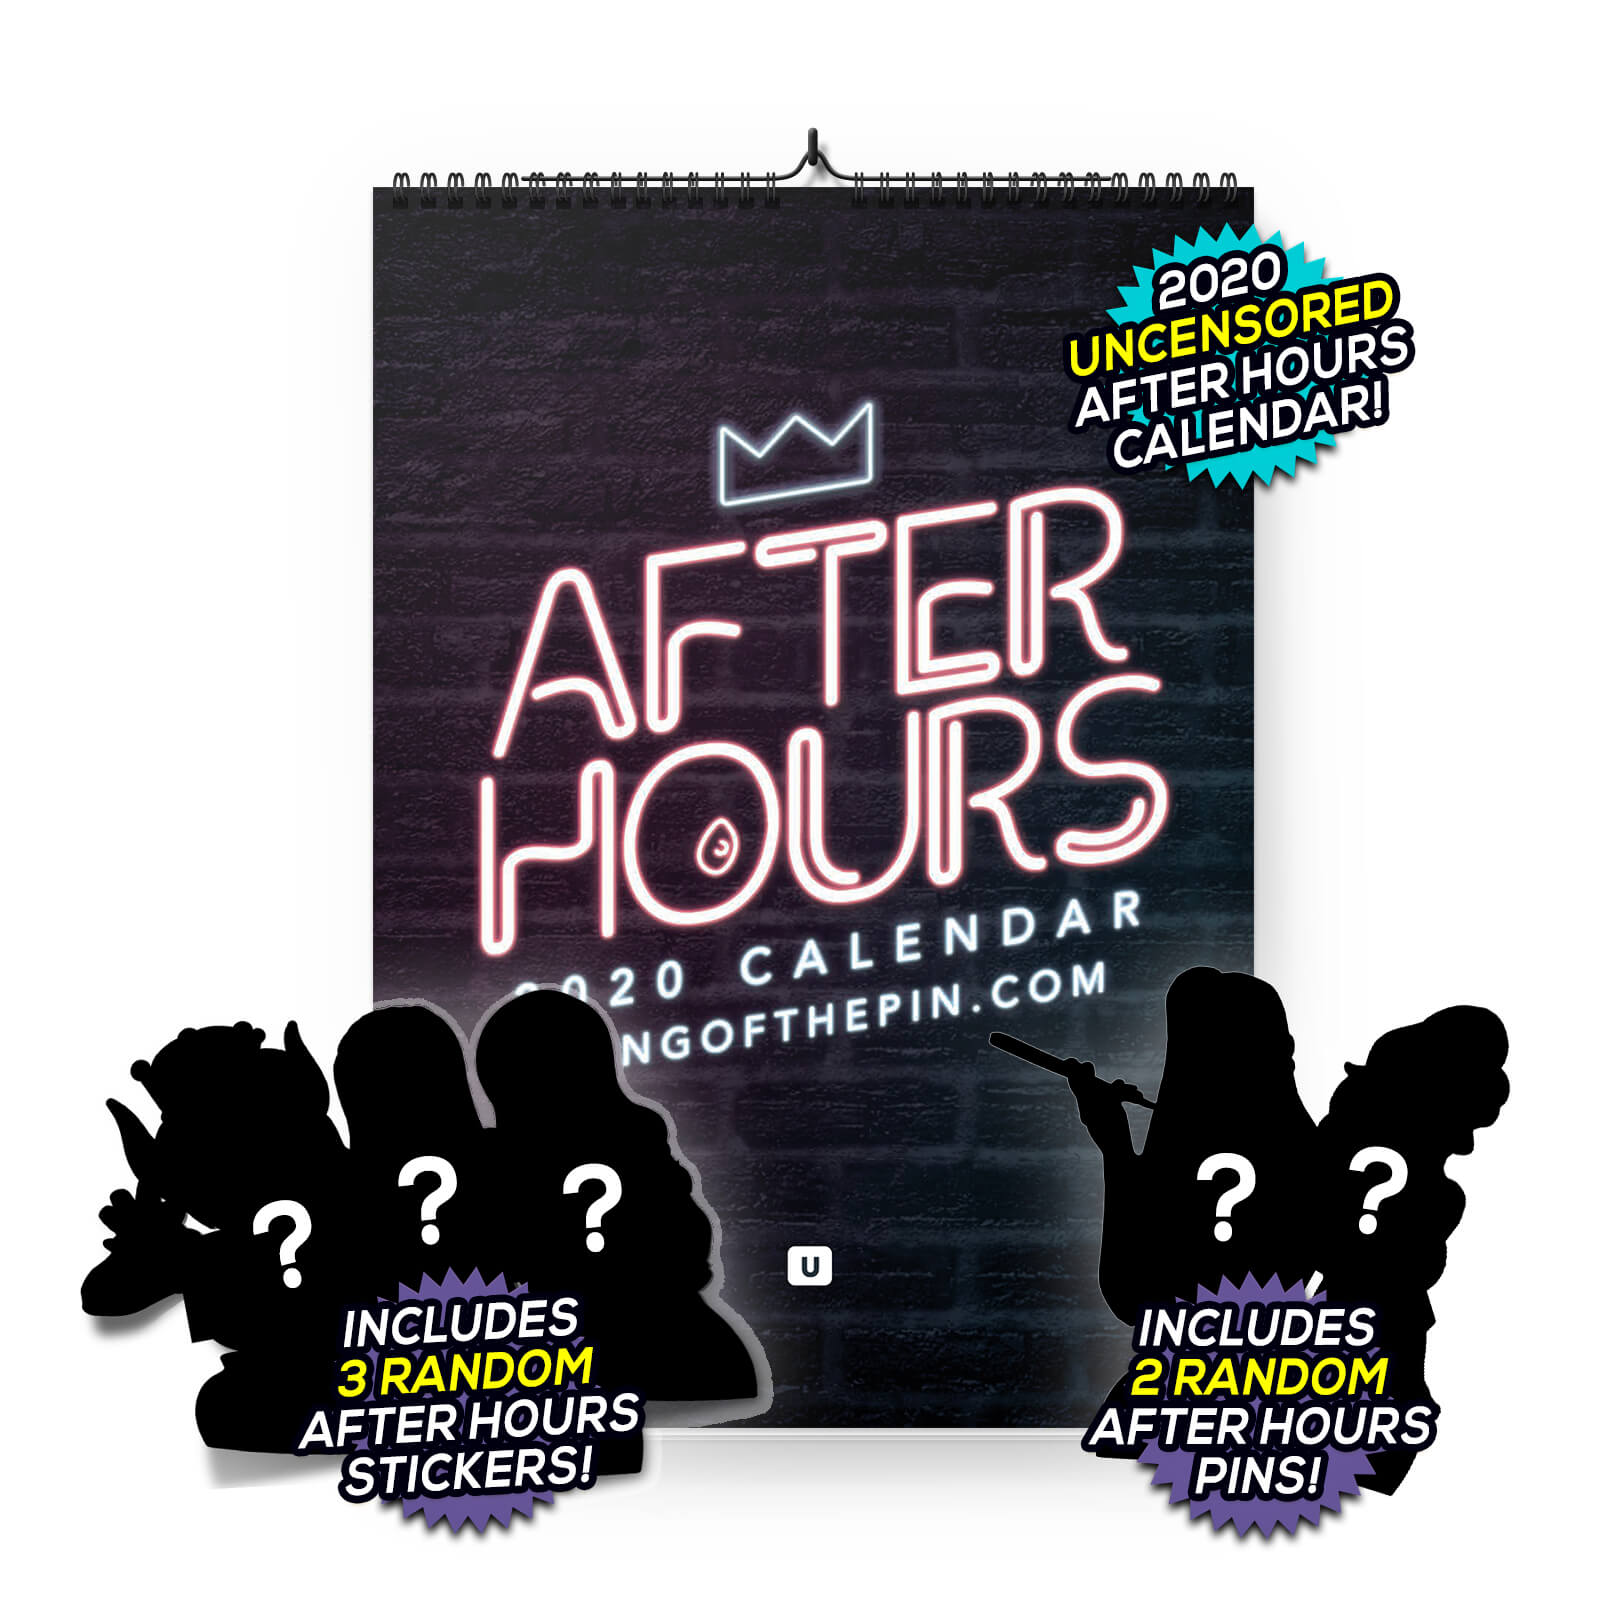 2020 After Hours (Uncensored) Calendar [DELUXE EDITION]